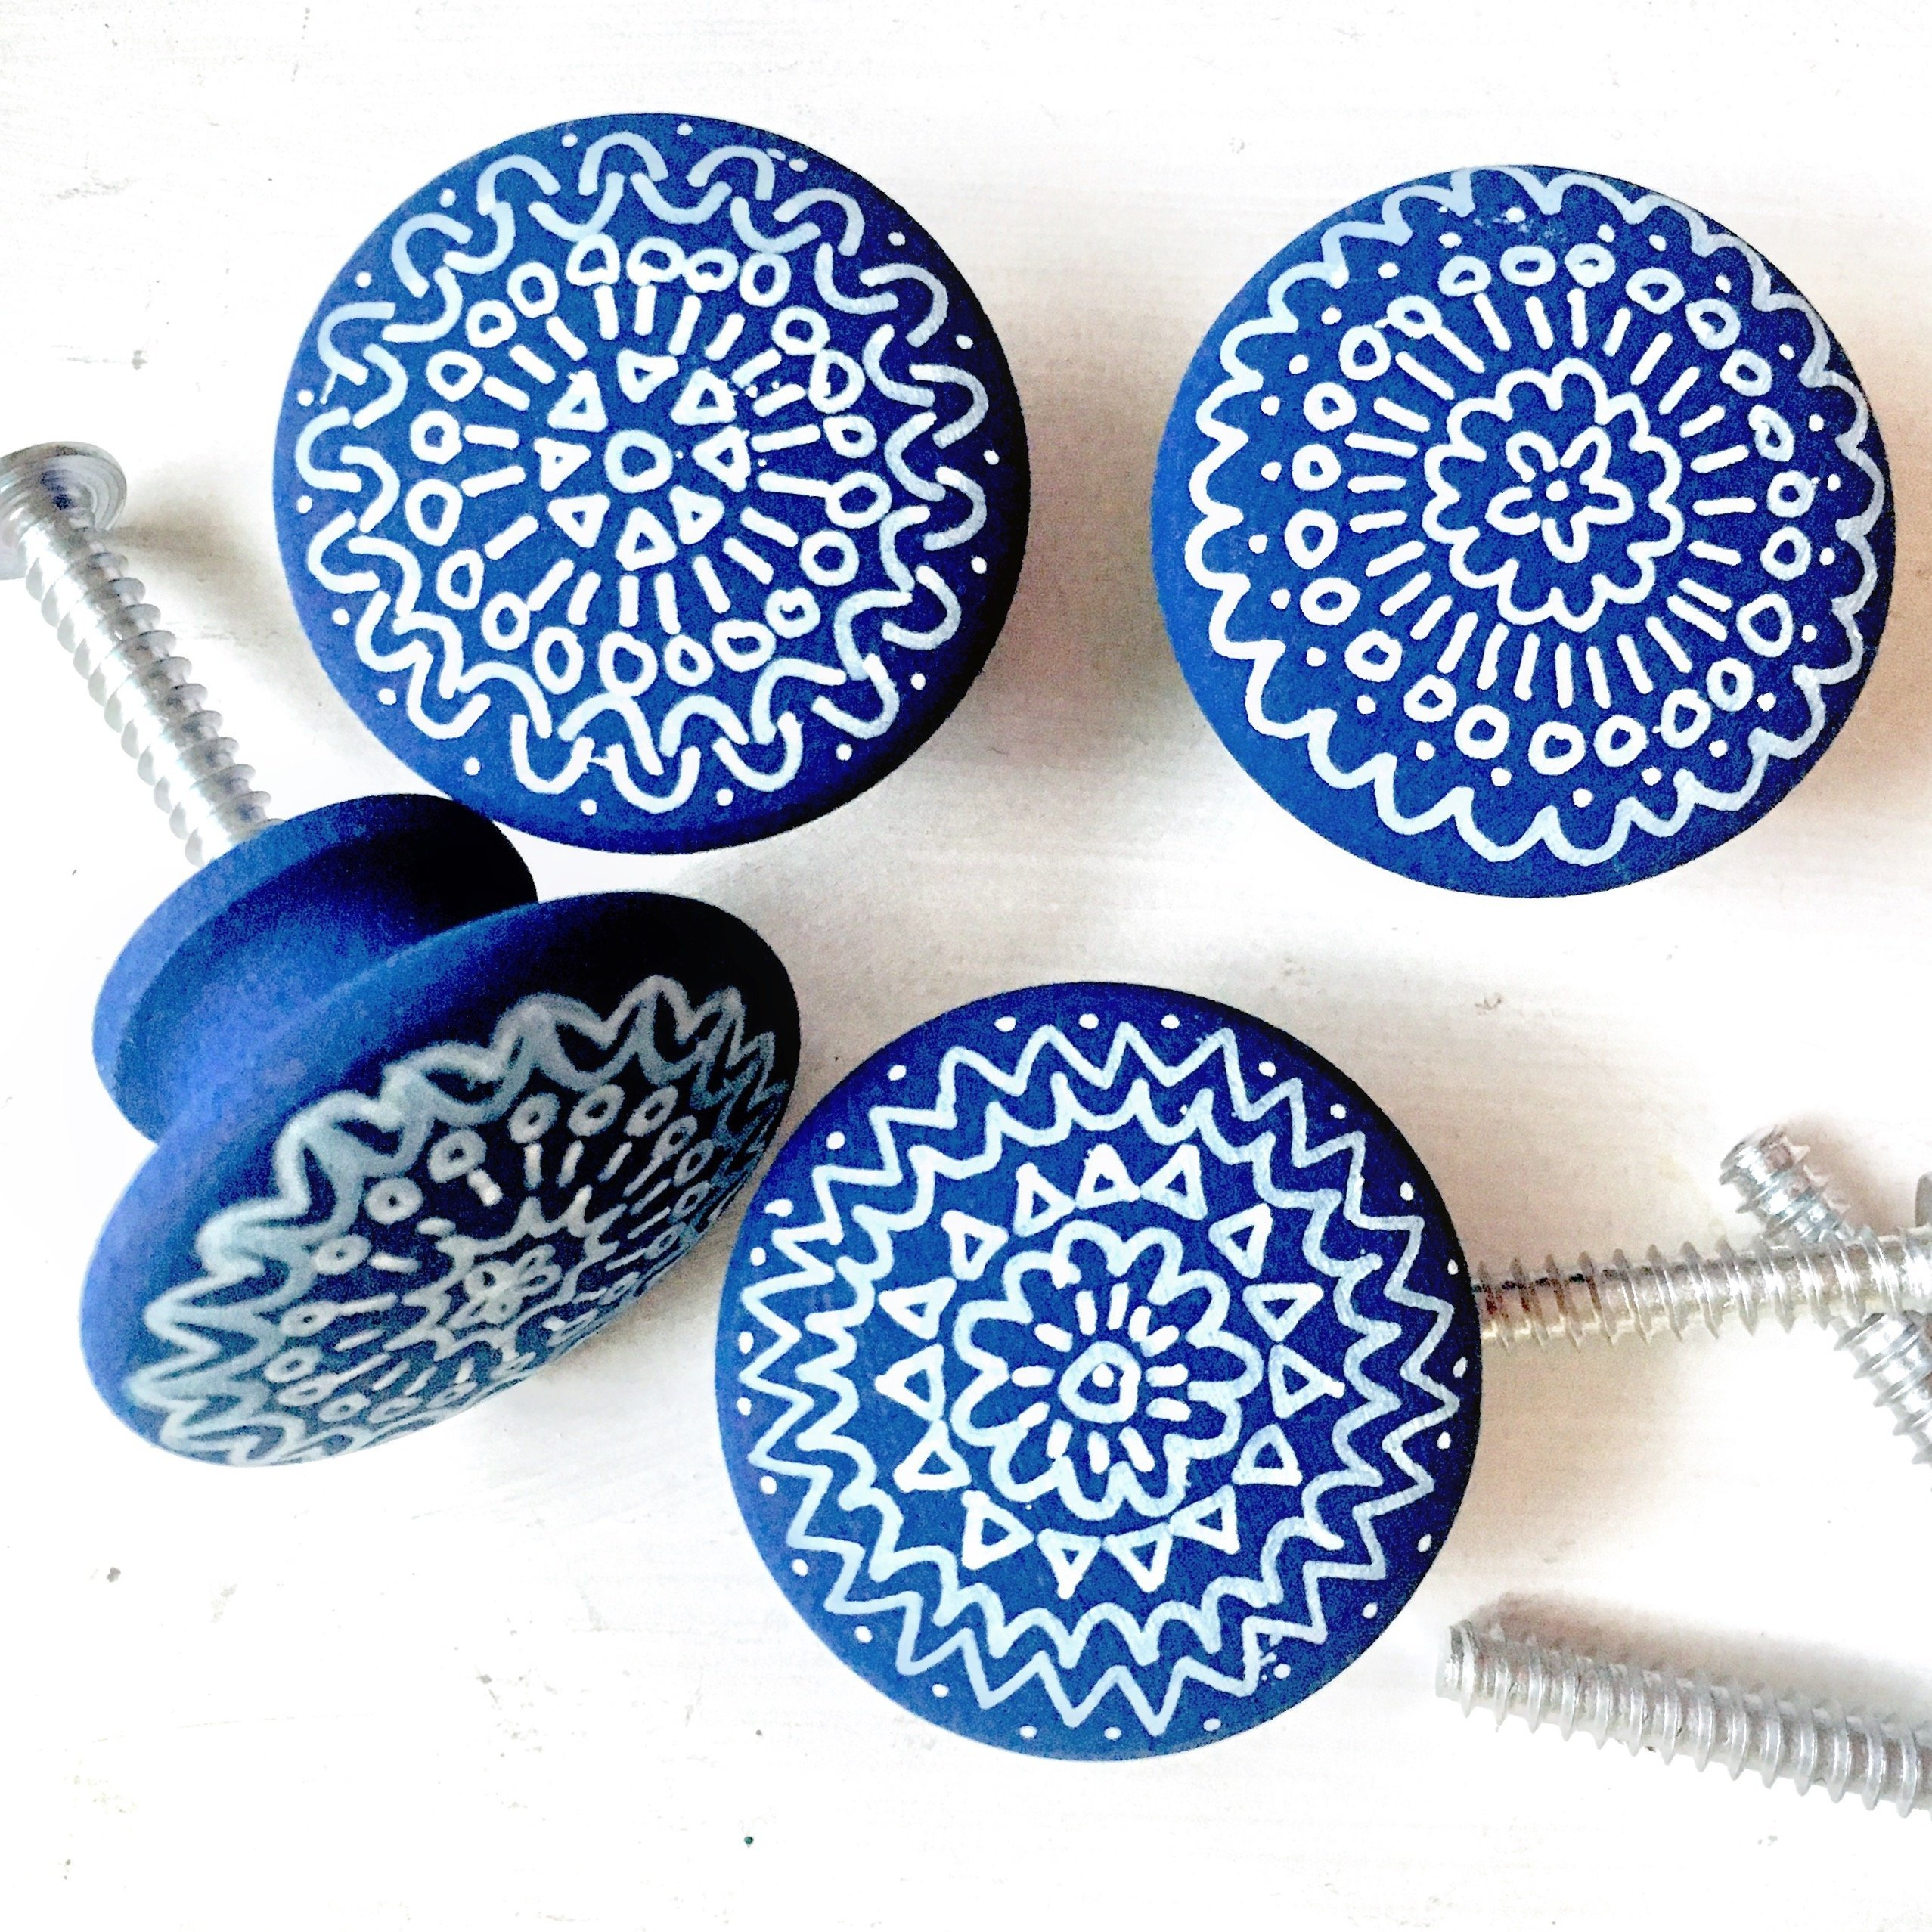 Set of 12- Hand-painted wooden knobs for cabinets, dresser, drawer pulls, shutters, boxes, boho mandala design, any color custom, bohemian/cottage/coastal/shabby chic (12 knobs)